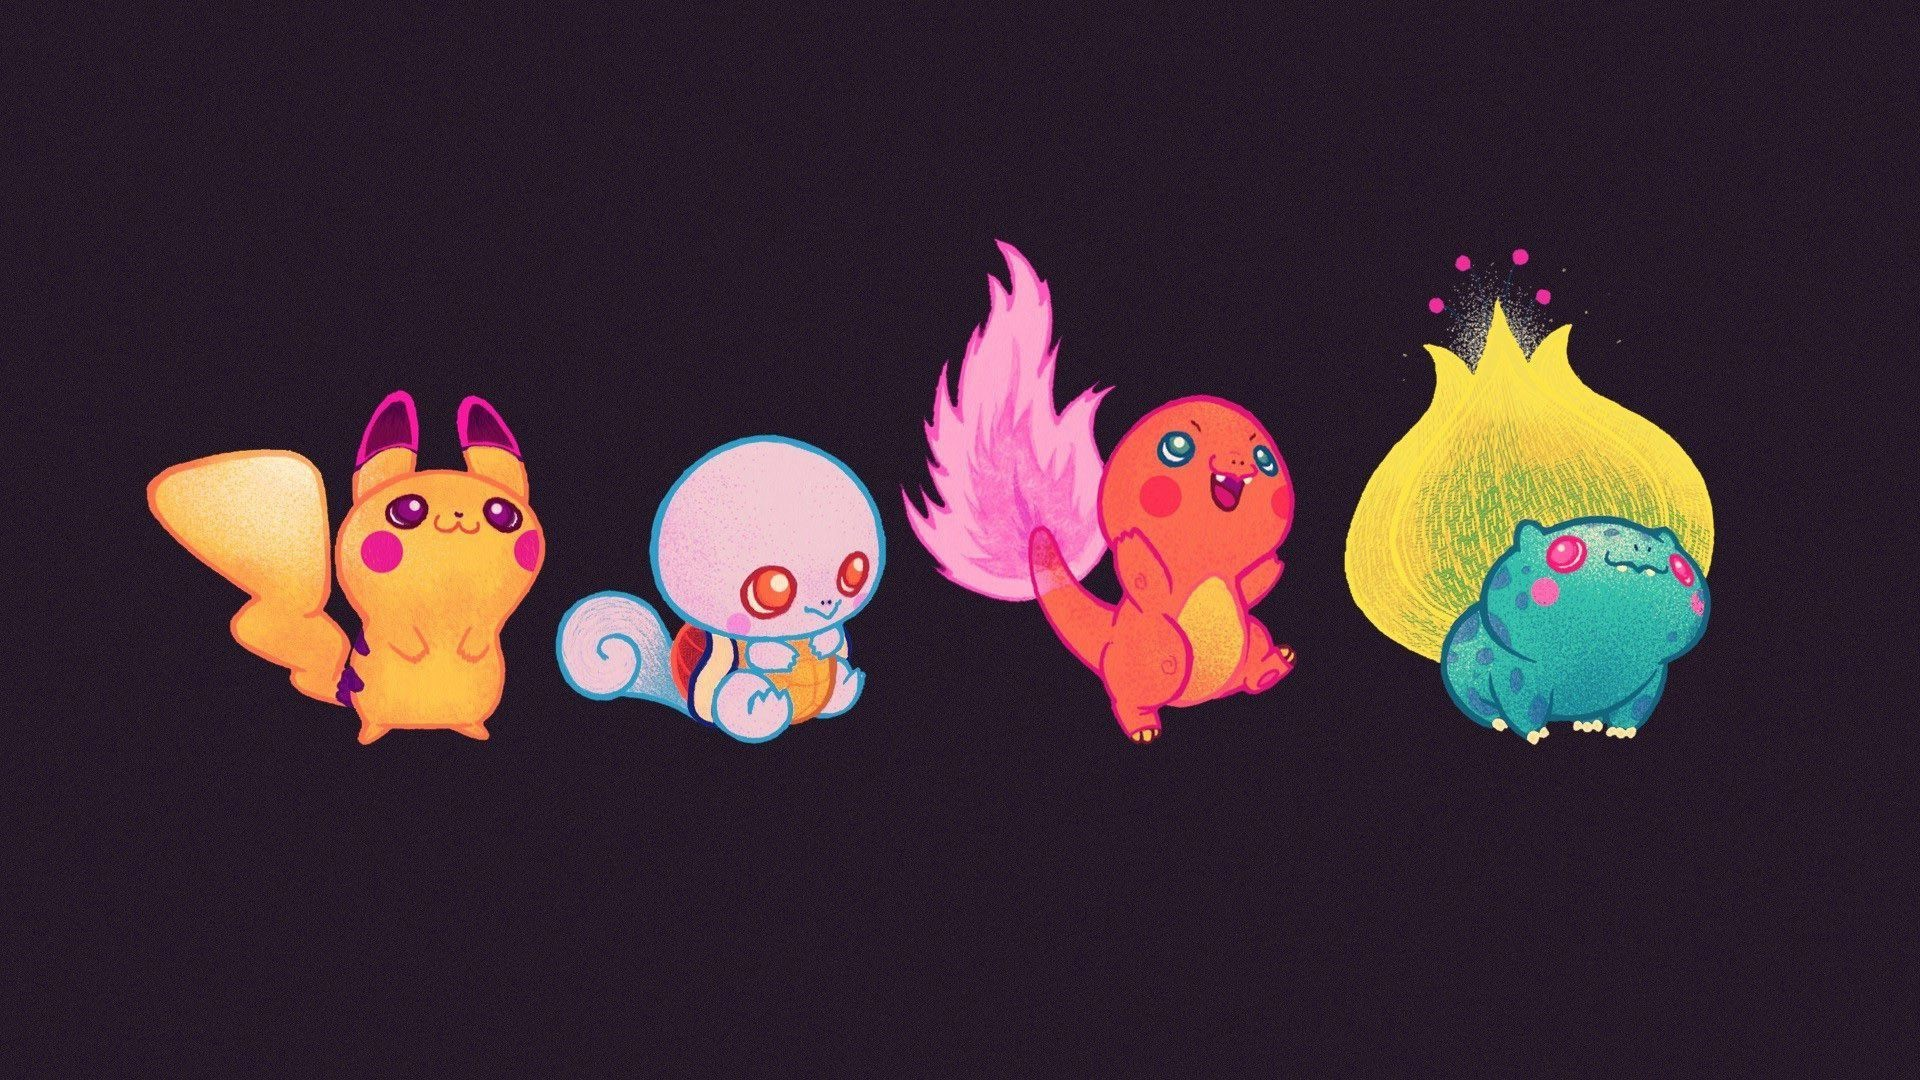 1920x1080 Cute baby Pokemon wallpaper #